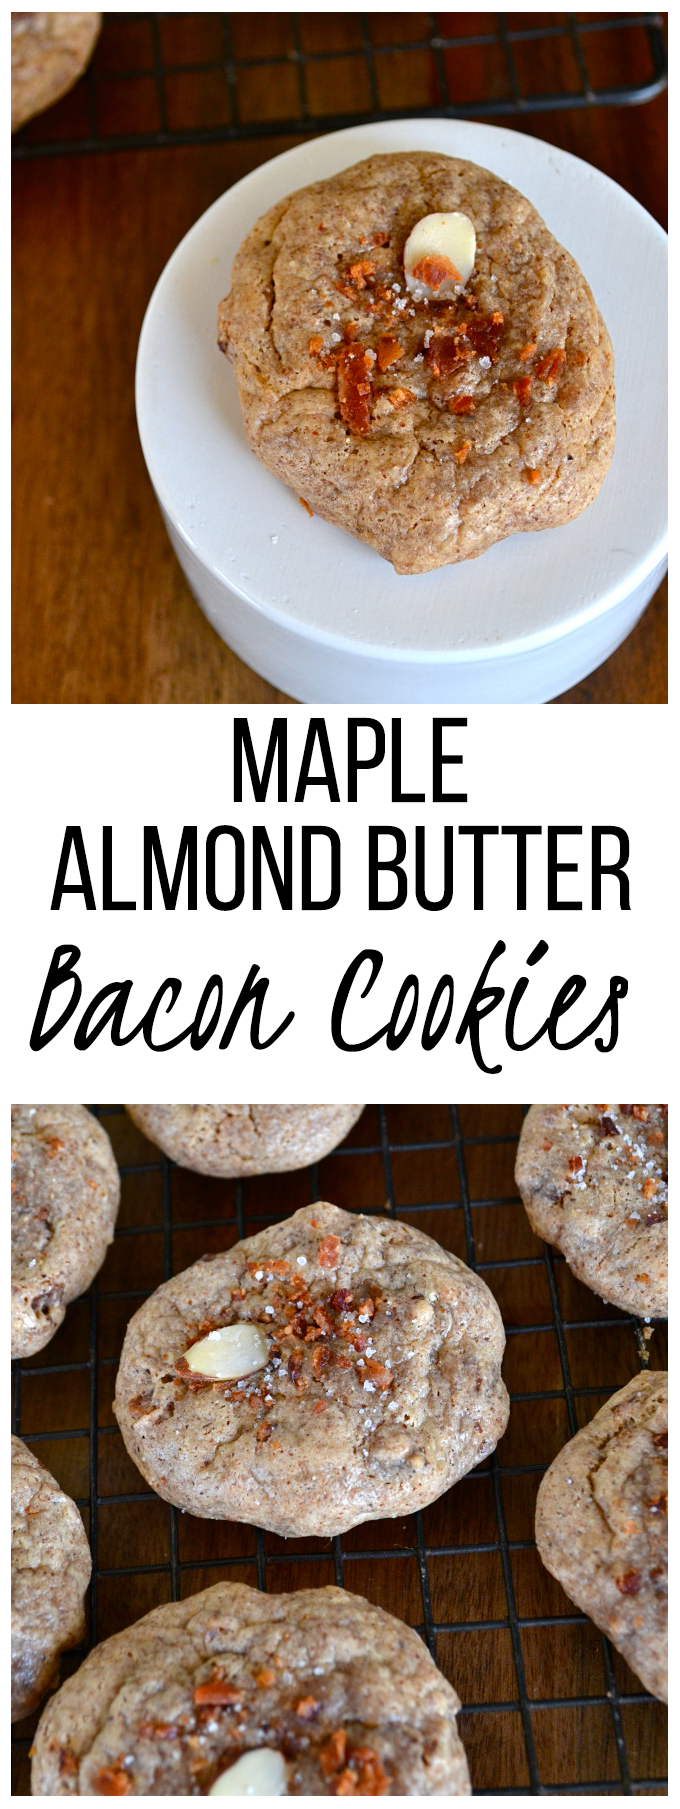 Maple Almond Butter Bacon Cookies - Grain free, paleo and so tasty!